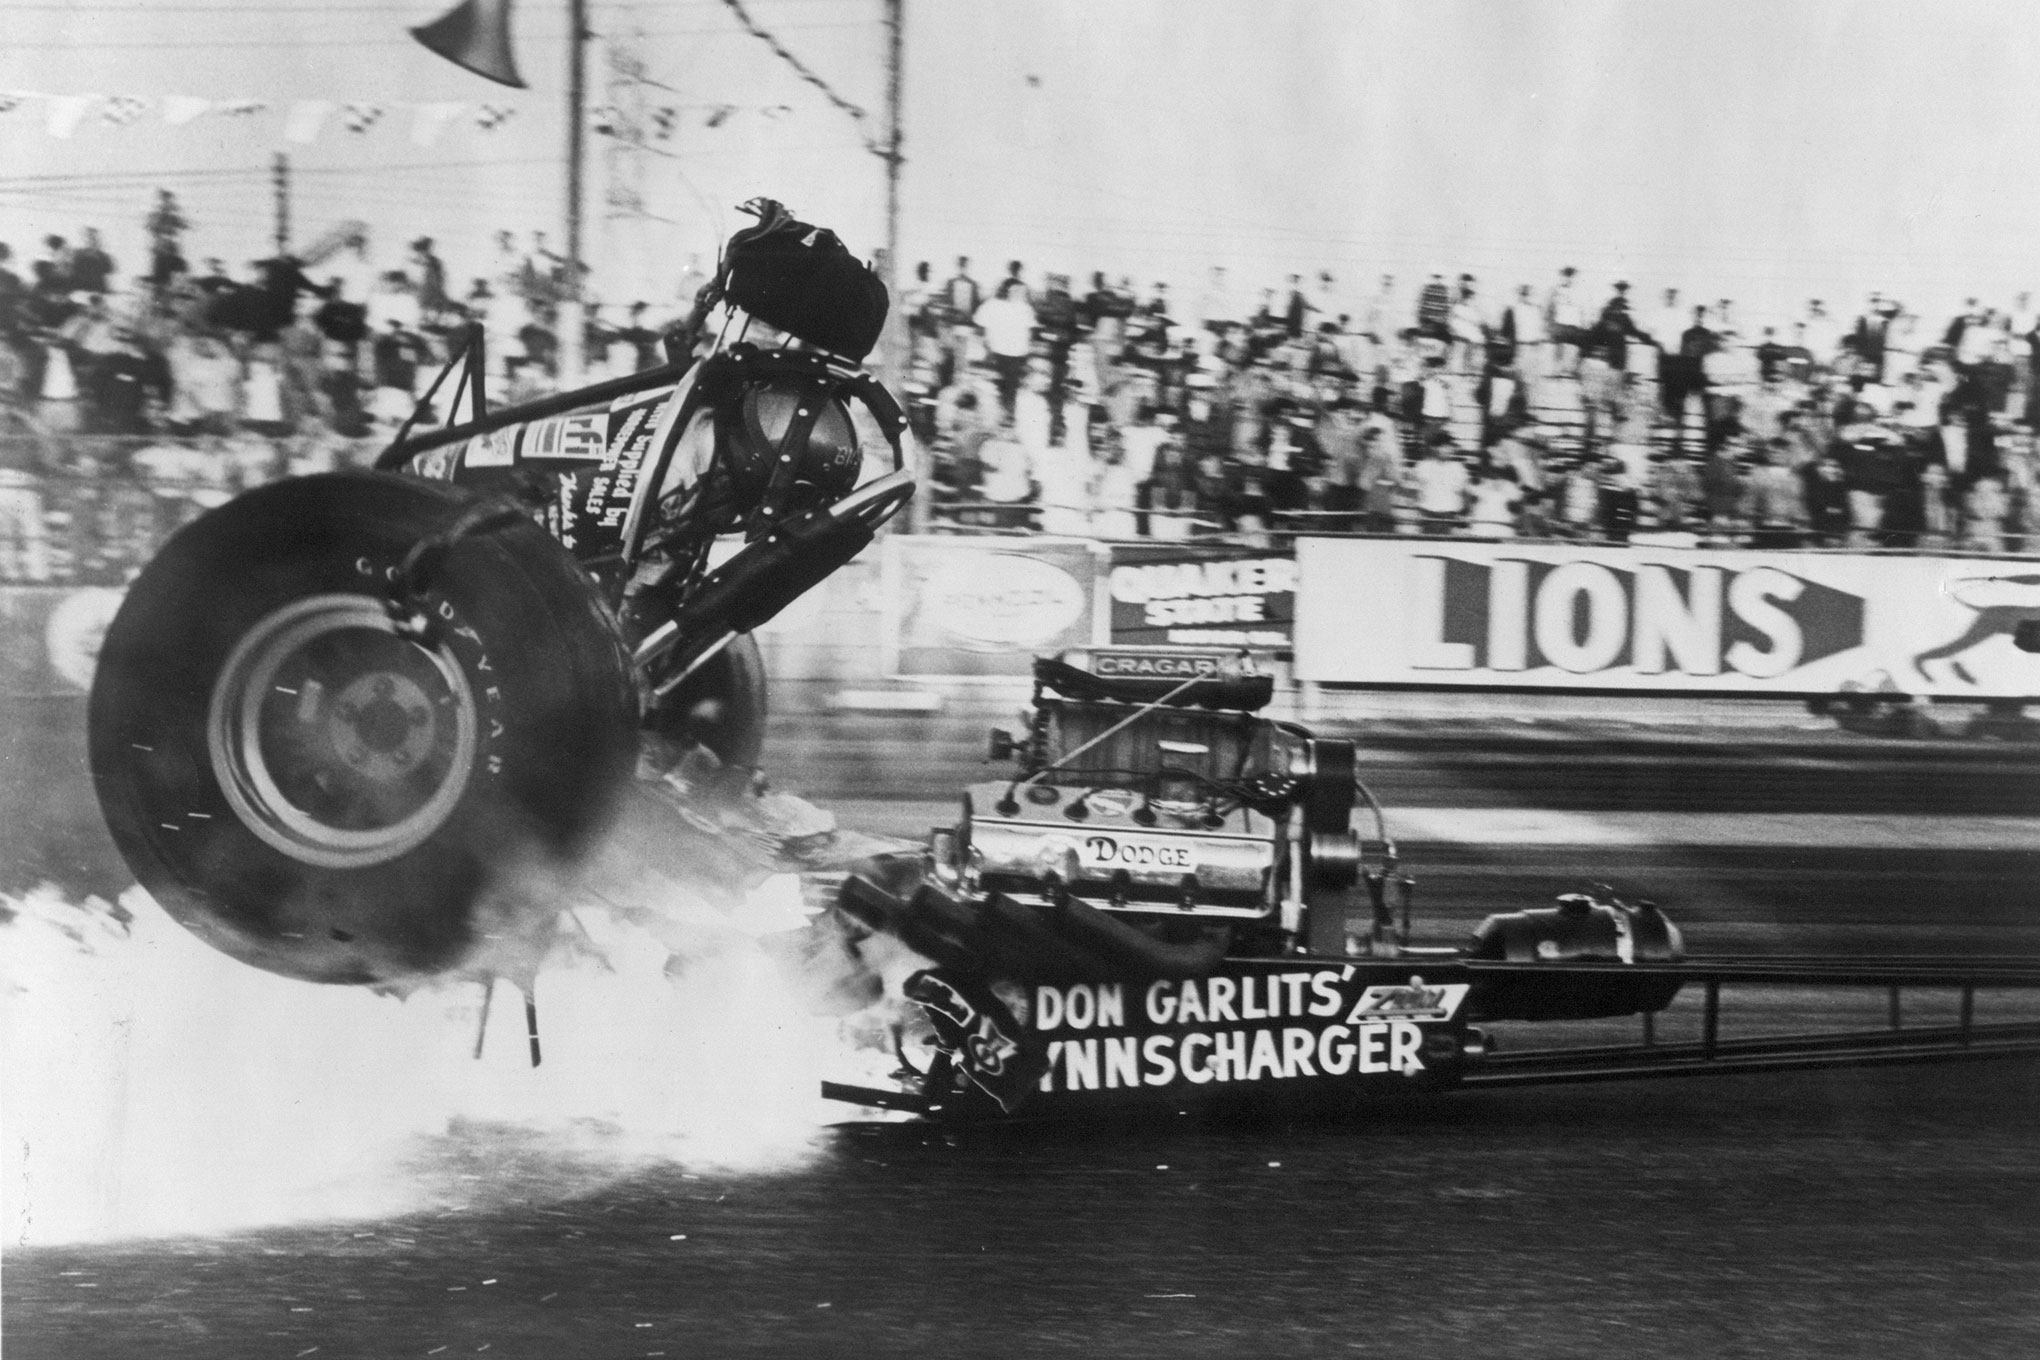 1970-1974: A Brutal Period for Drag Racing | Automobile Magazine